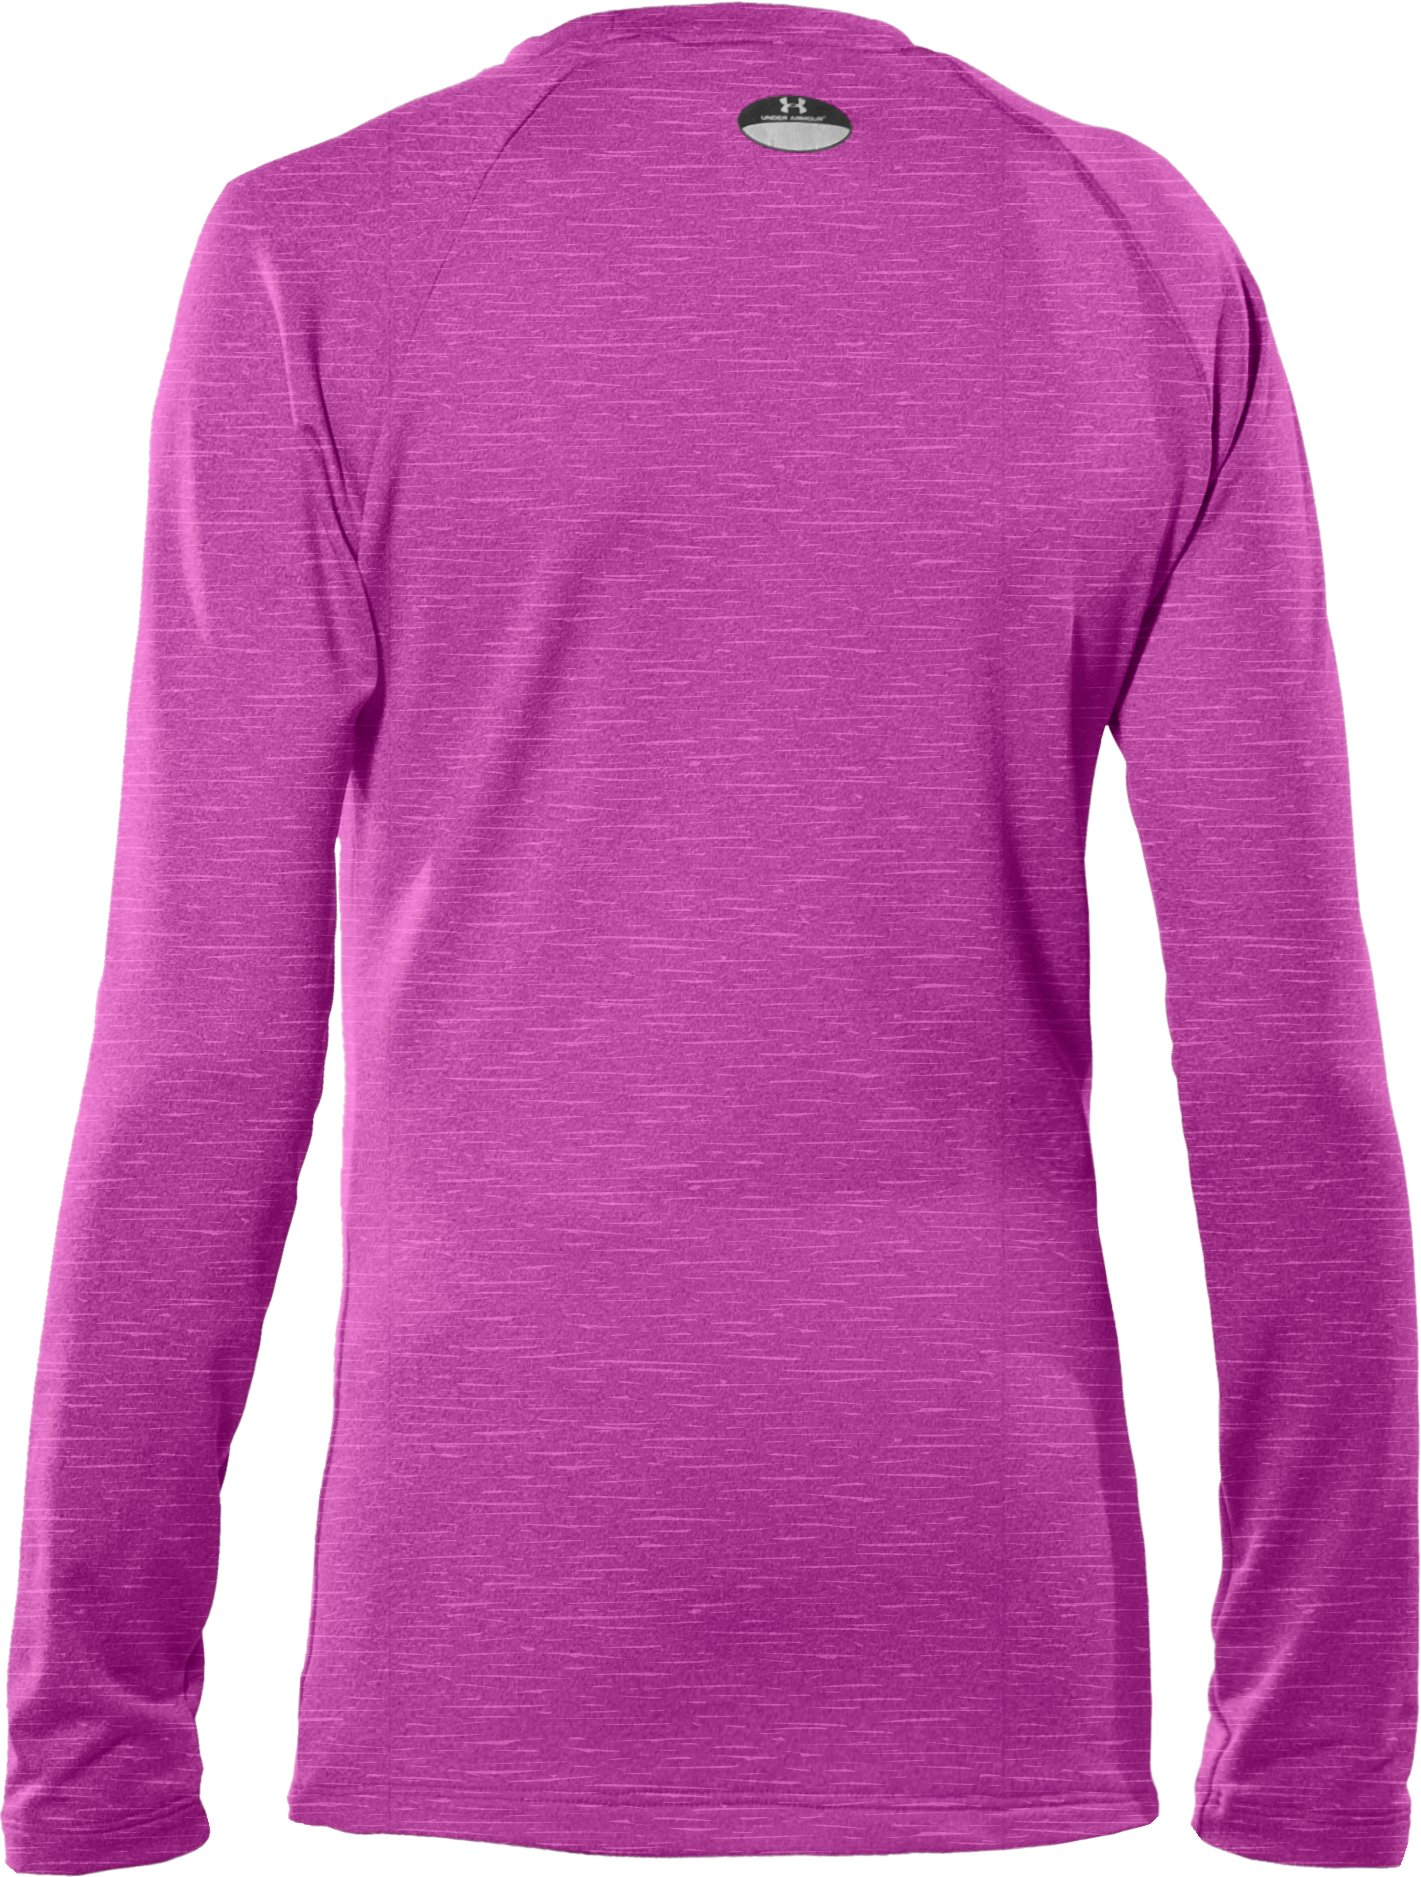 Girls' ColdGear® Fitted Long Sleeve Crew, STROBE